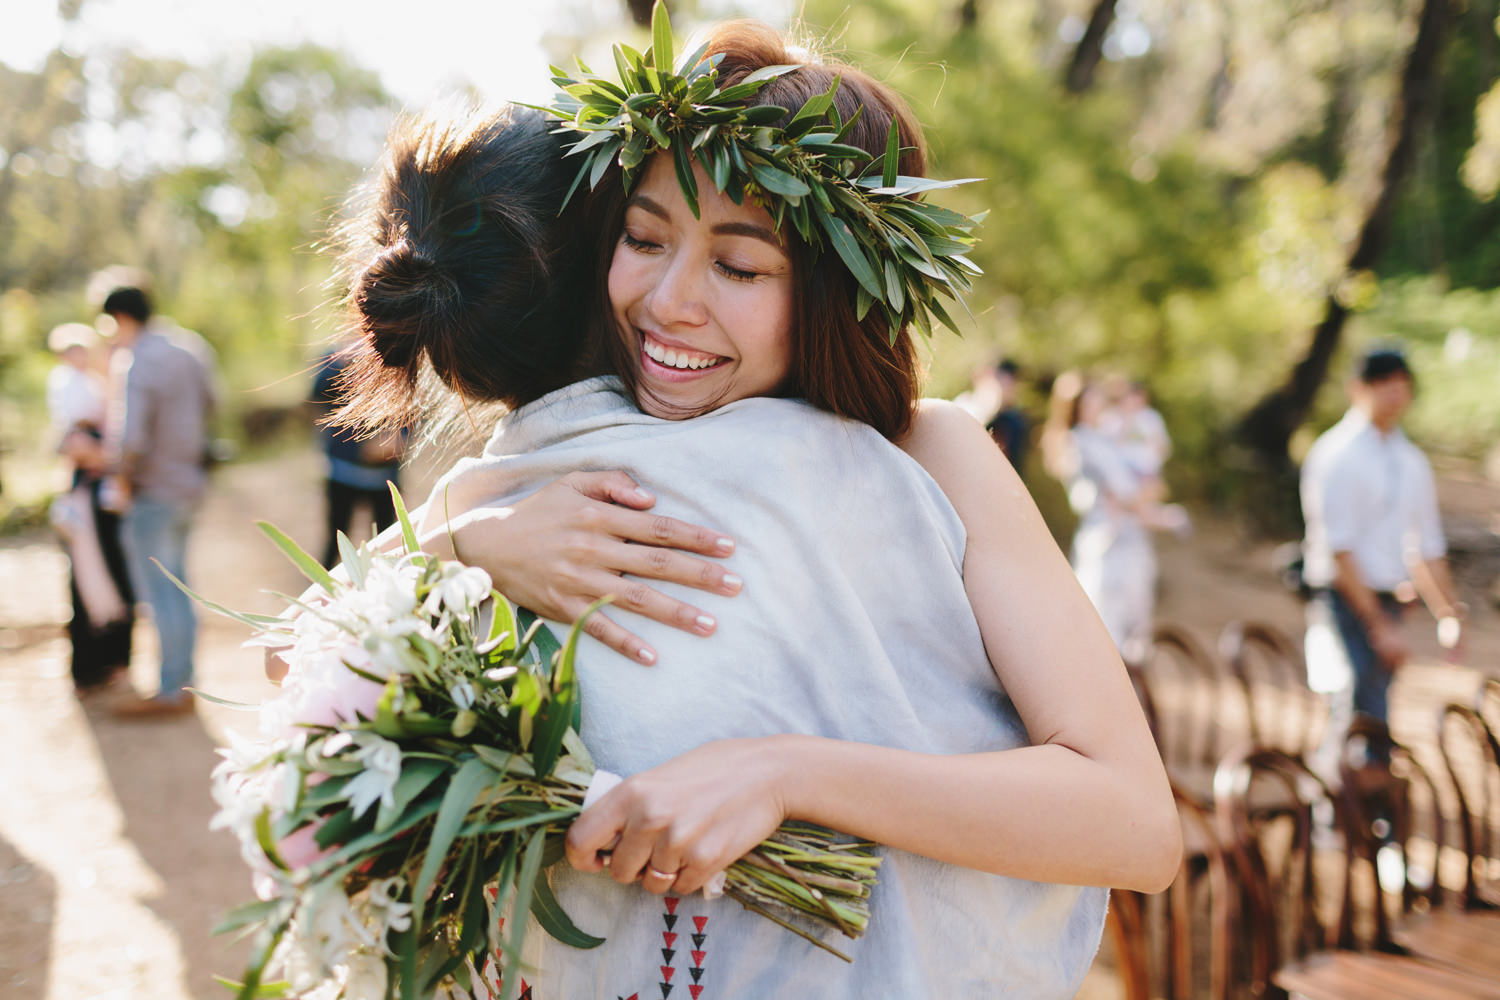 118-Barn_Wedding_Australia_Sam_Ting.jpg